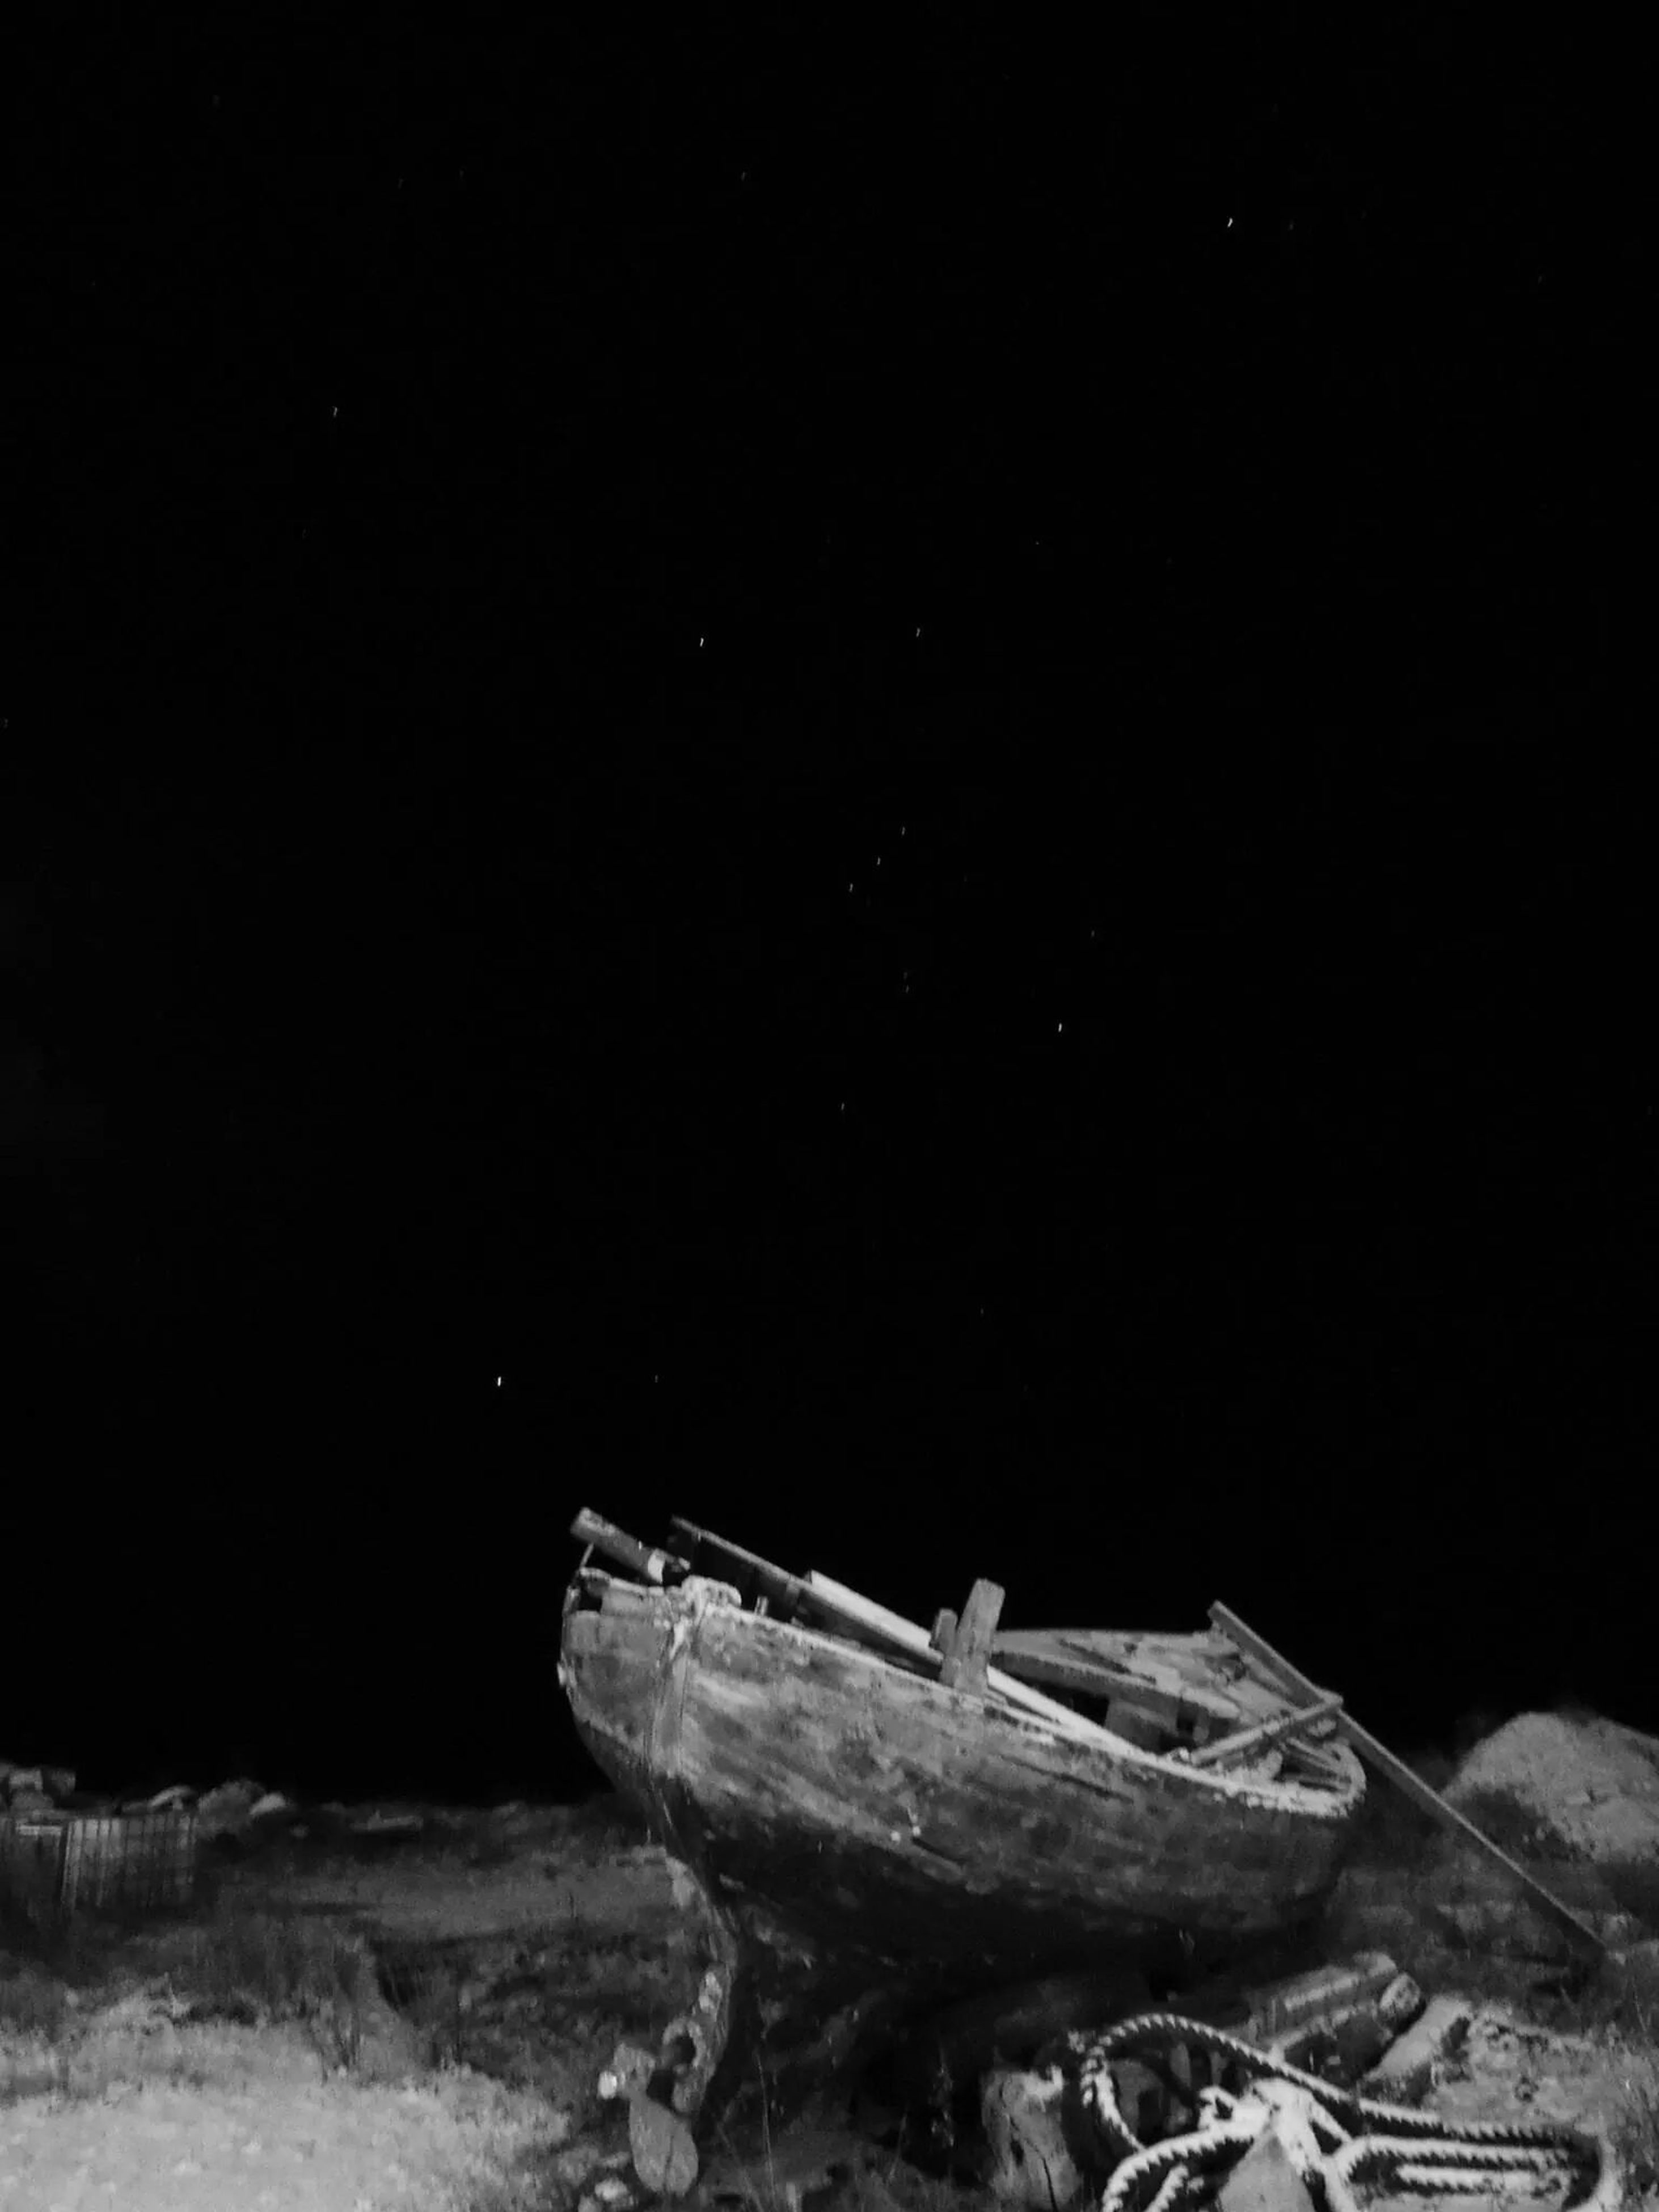 night, copy space, abandoned, clear sky, damaged, obsolete, dark, no people, outdoors, old, nature, rock - object, transportation, tranquility, deterioration, destruction, run-down, tranquil scene, wood - material, landscape